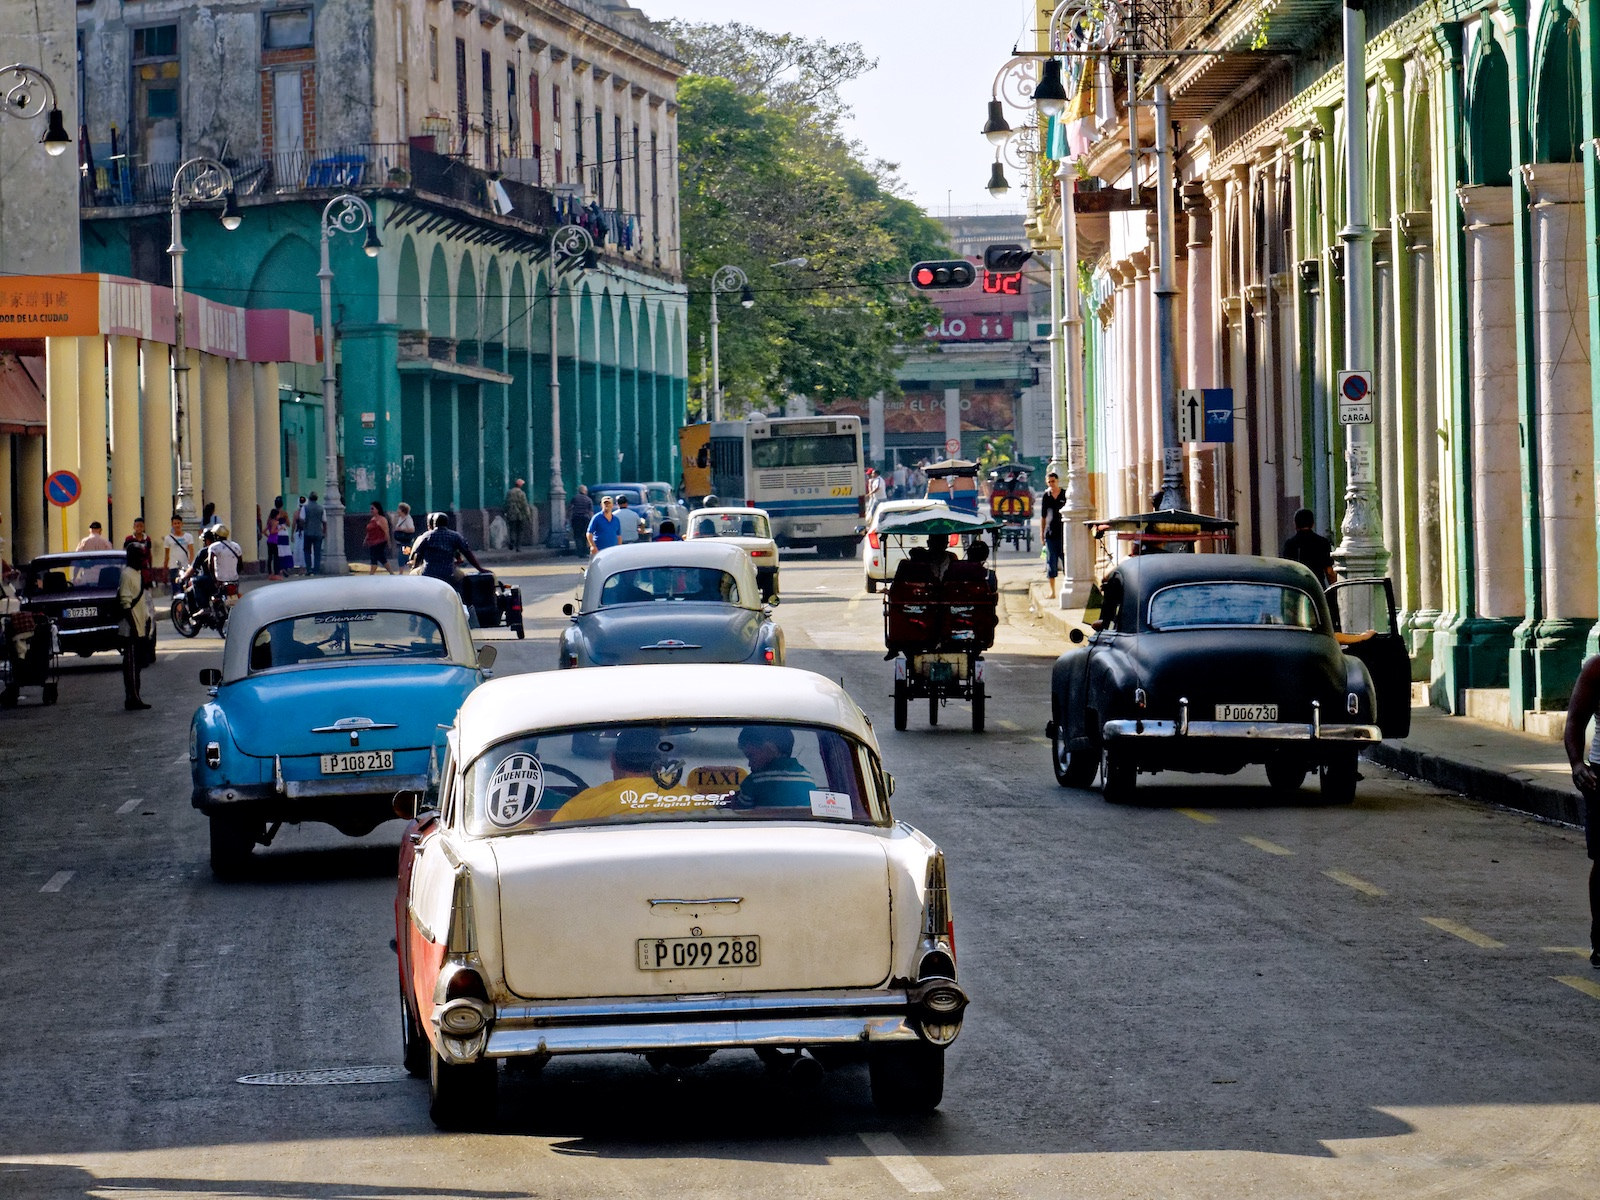 http://thedigitalstory.com/2015/01/31/downtown-havana-jan-2015.jpg